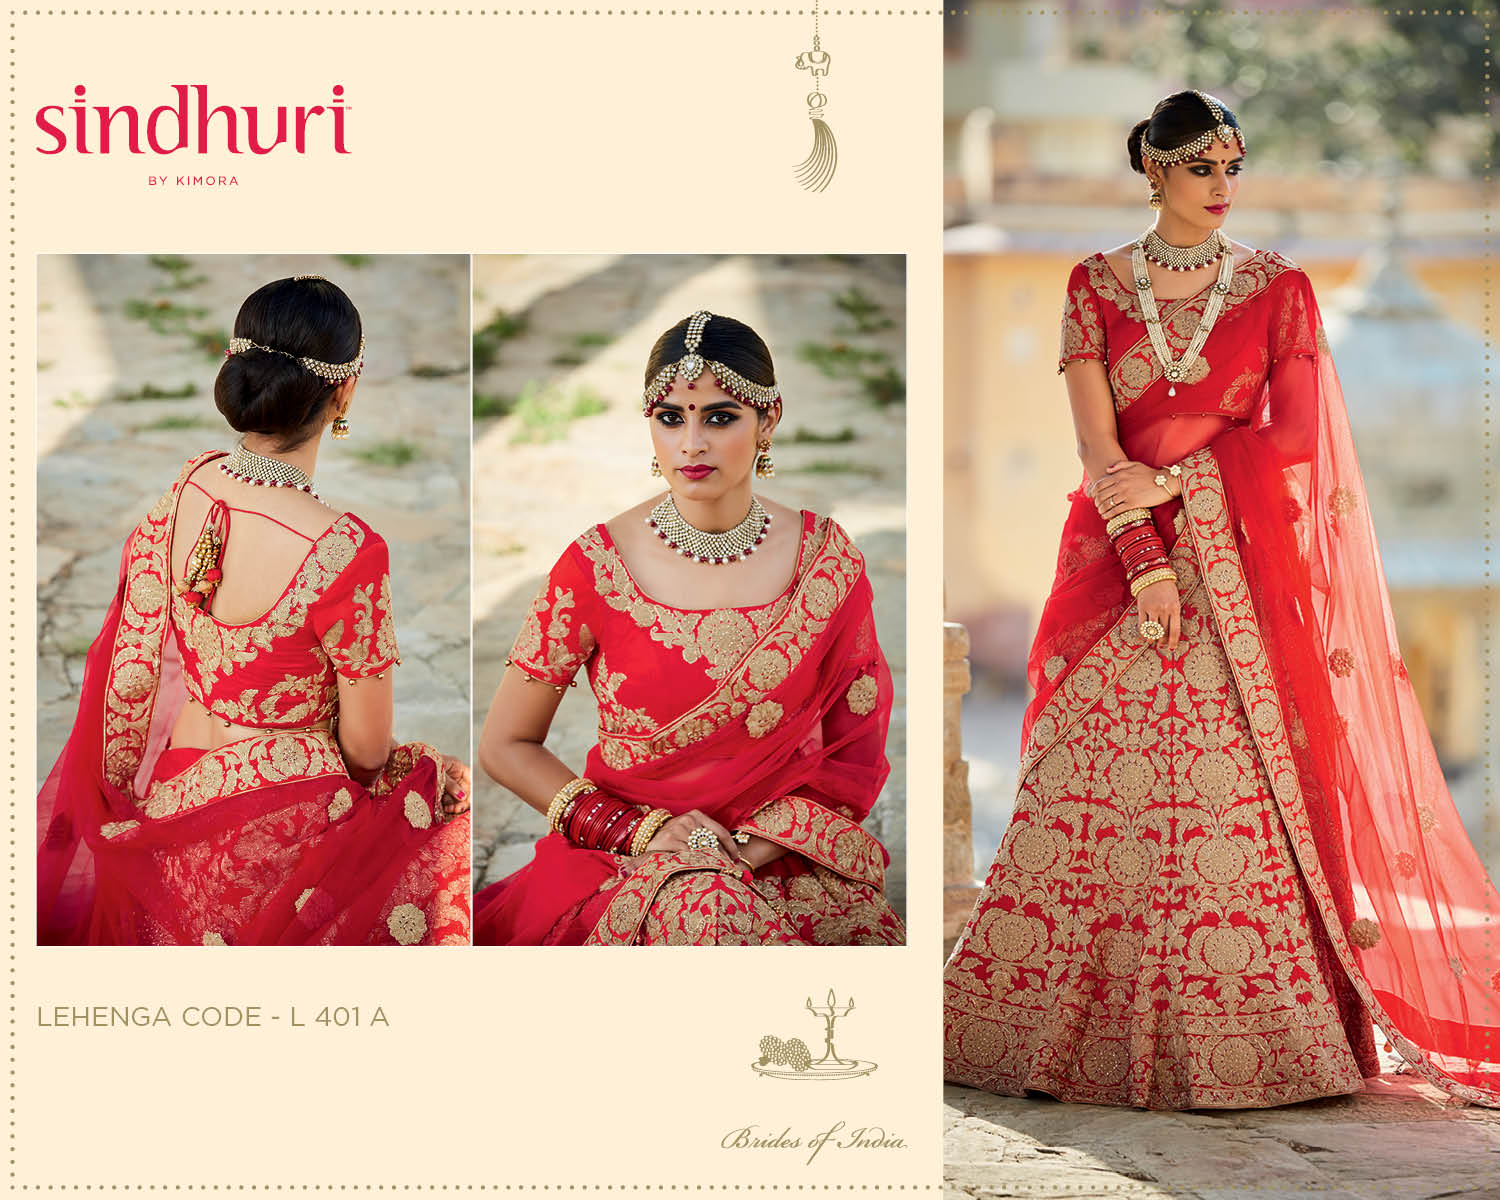 Sindhuri Lehenga – Latest New Heavy Wedding Collection New Lehenga Choli